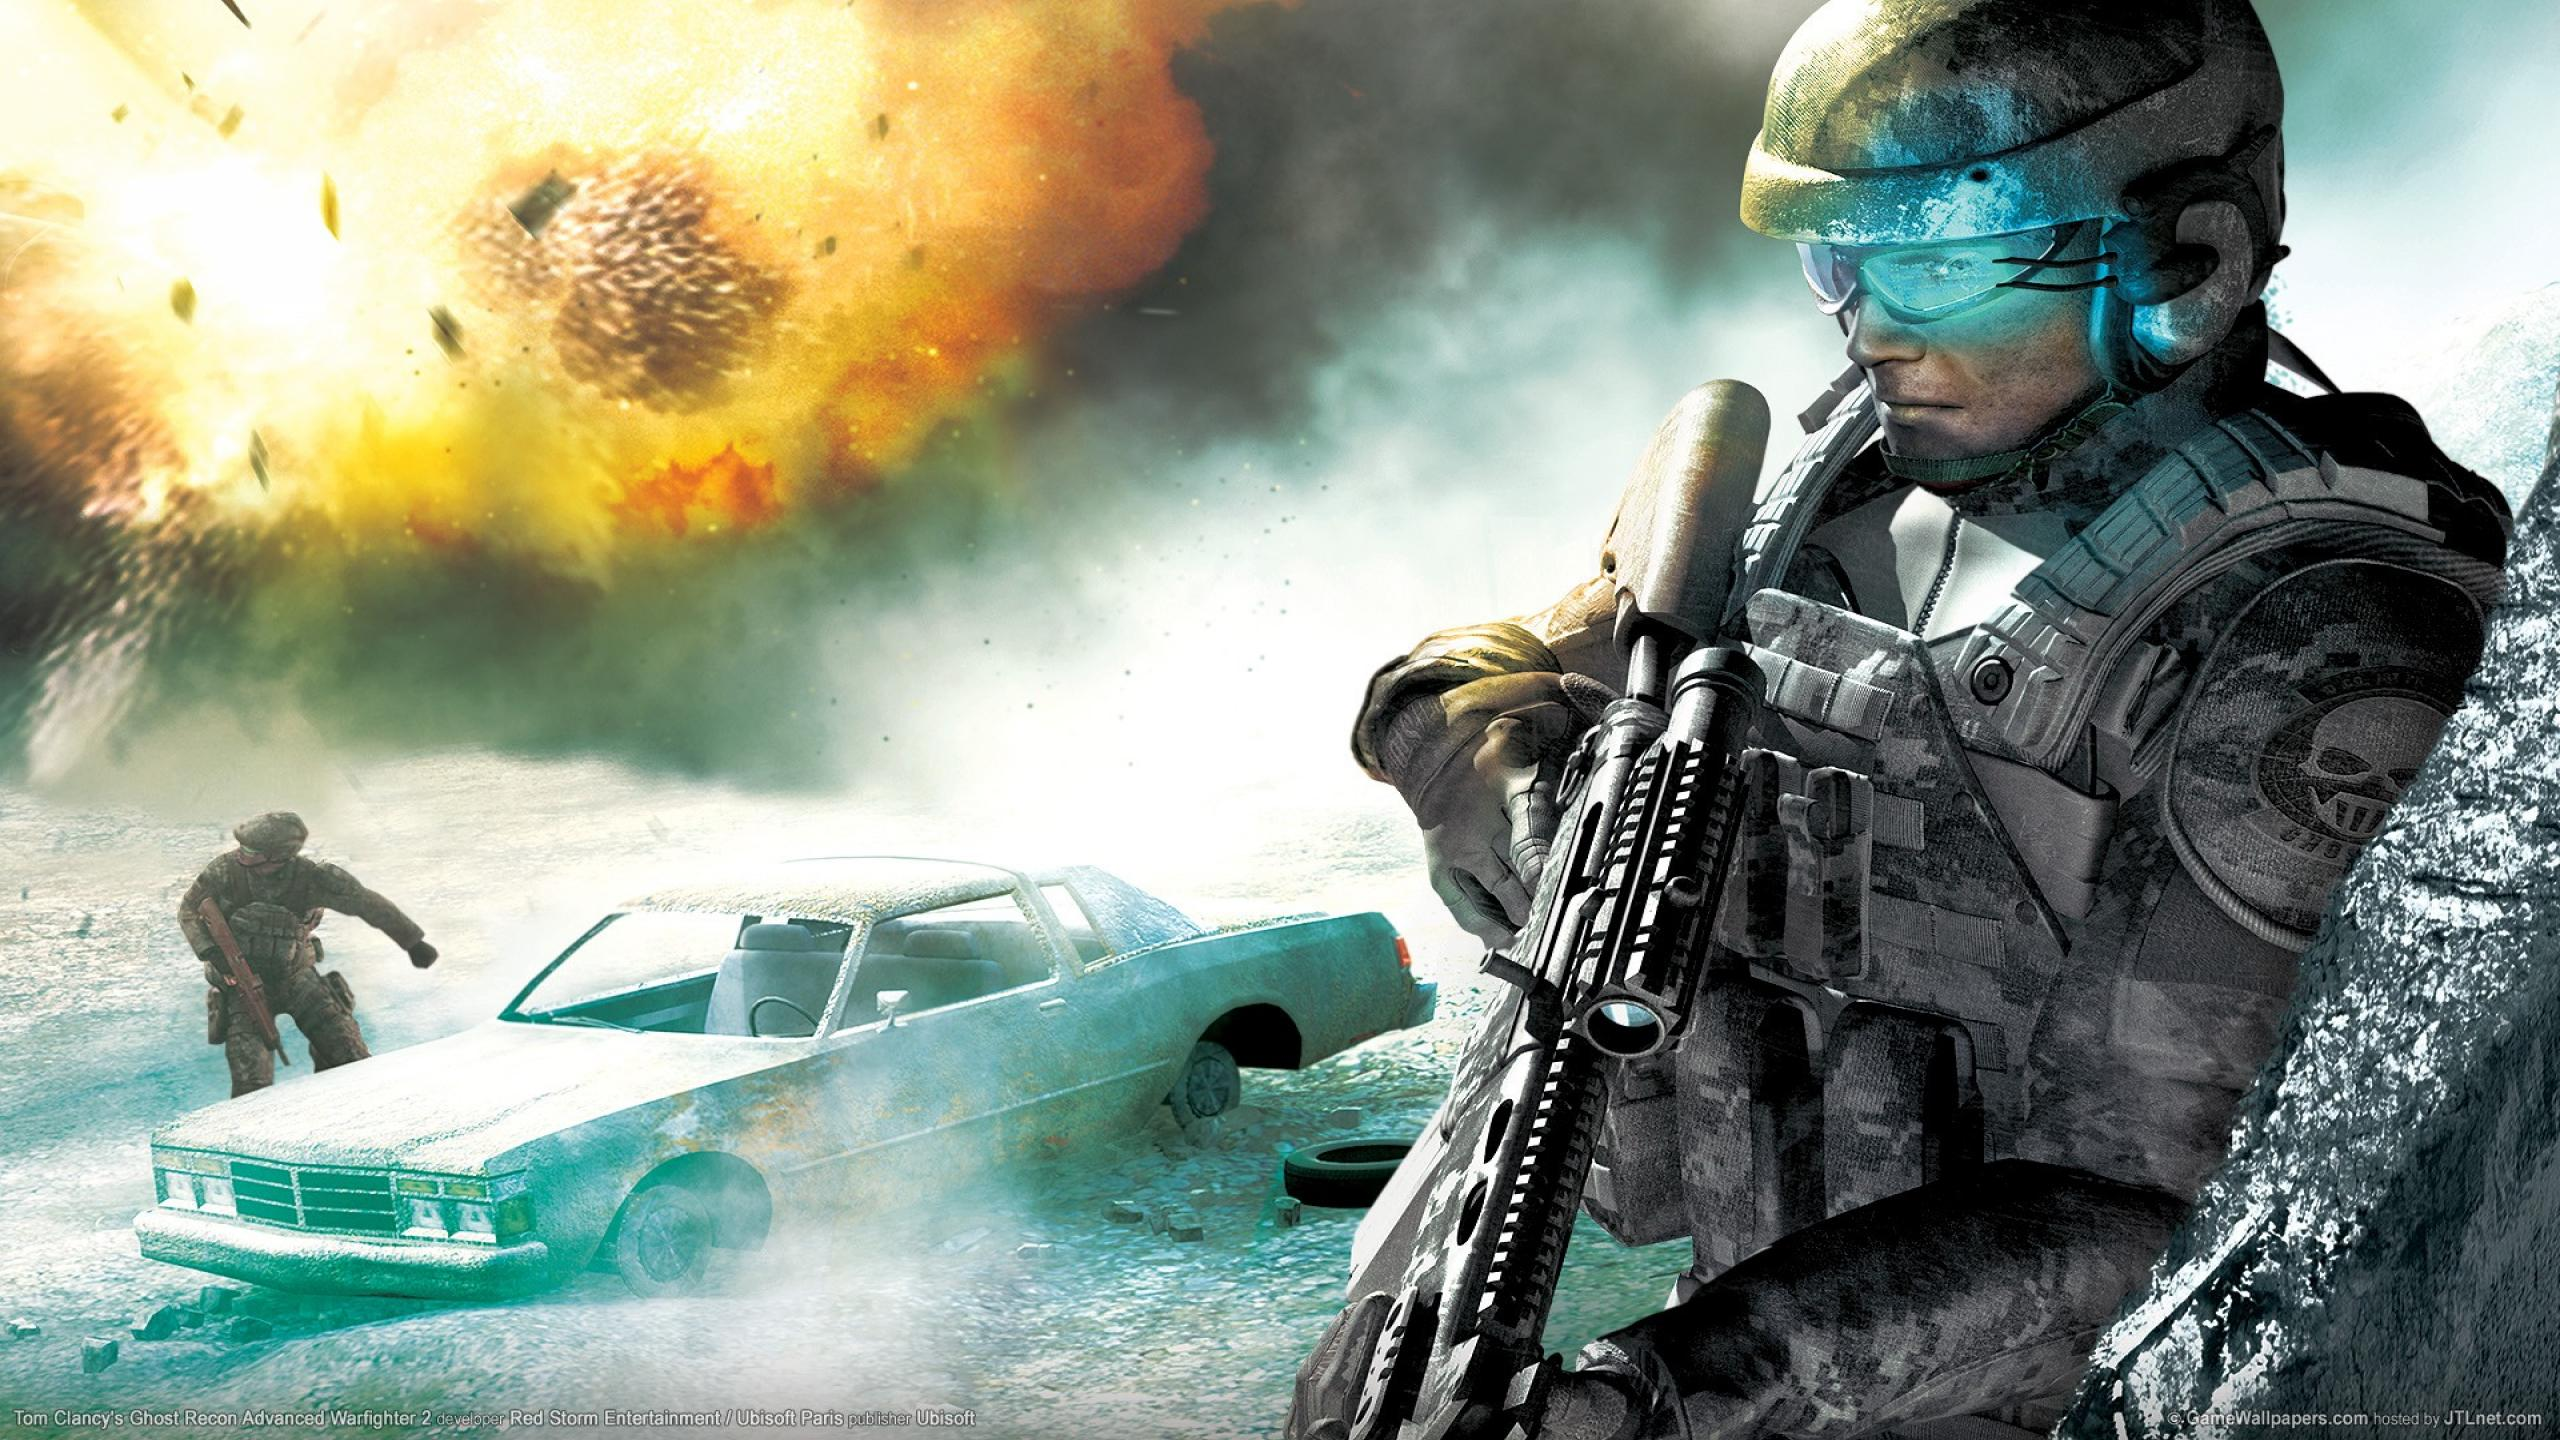 Game HD Wallpapers 2560x1440 Game Wallpapers 2560x1440 Download 2560x1440